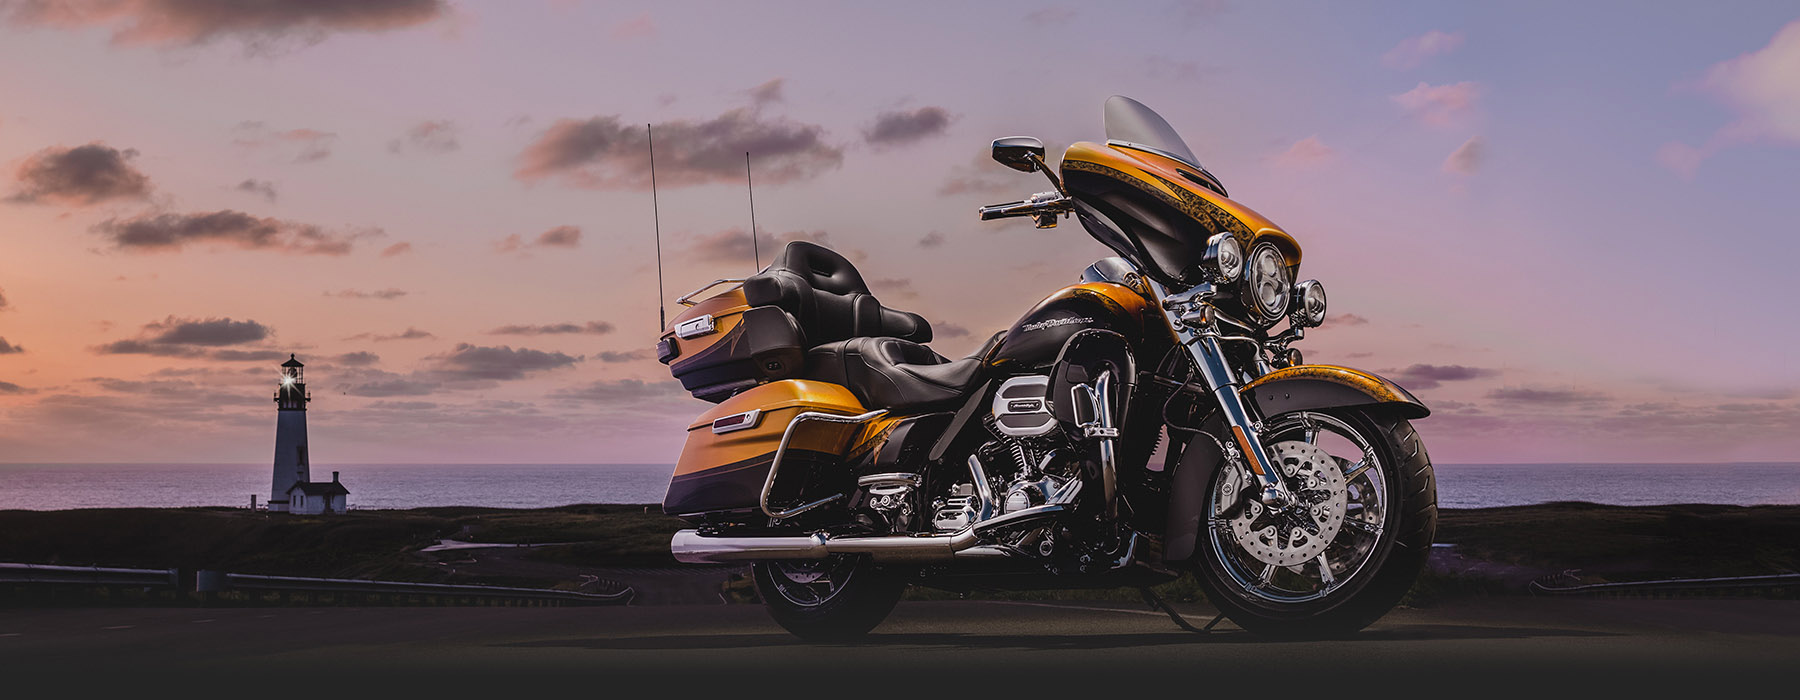 2015 HD CVO Limited